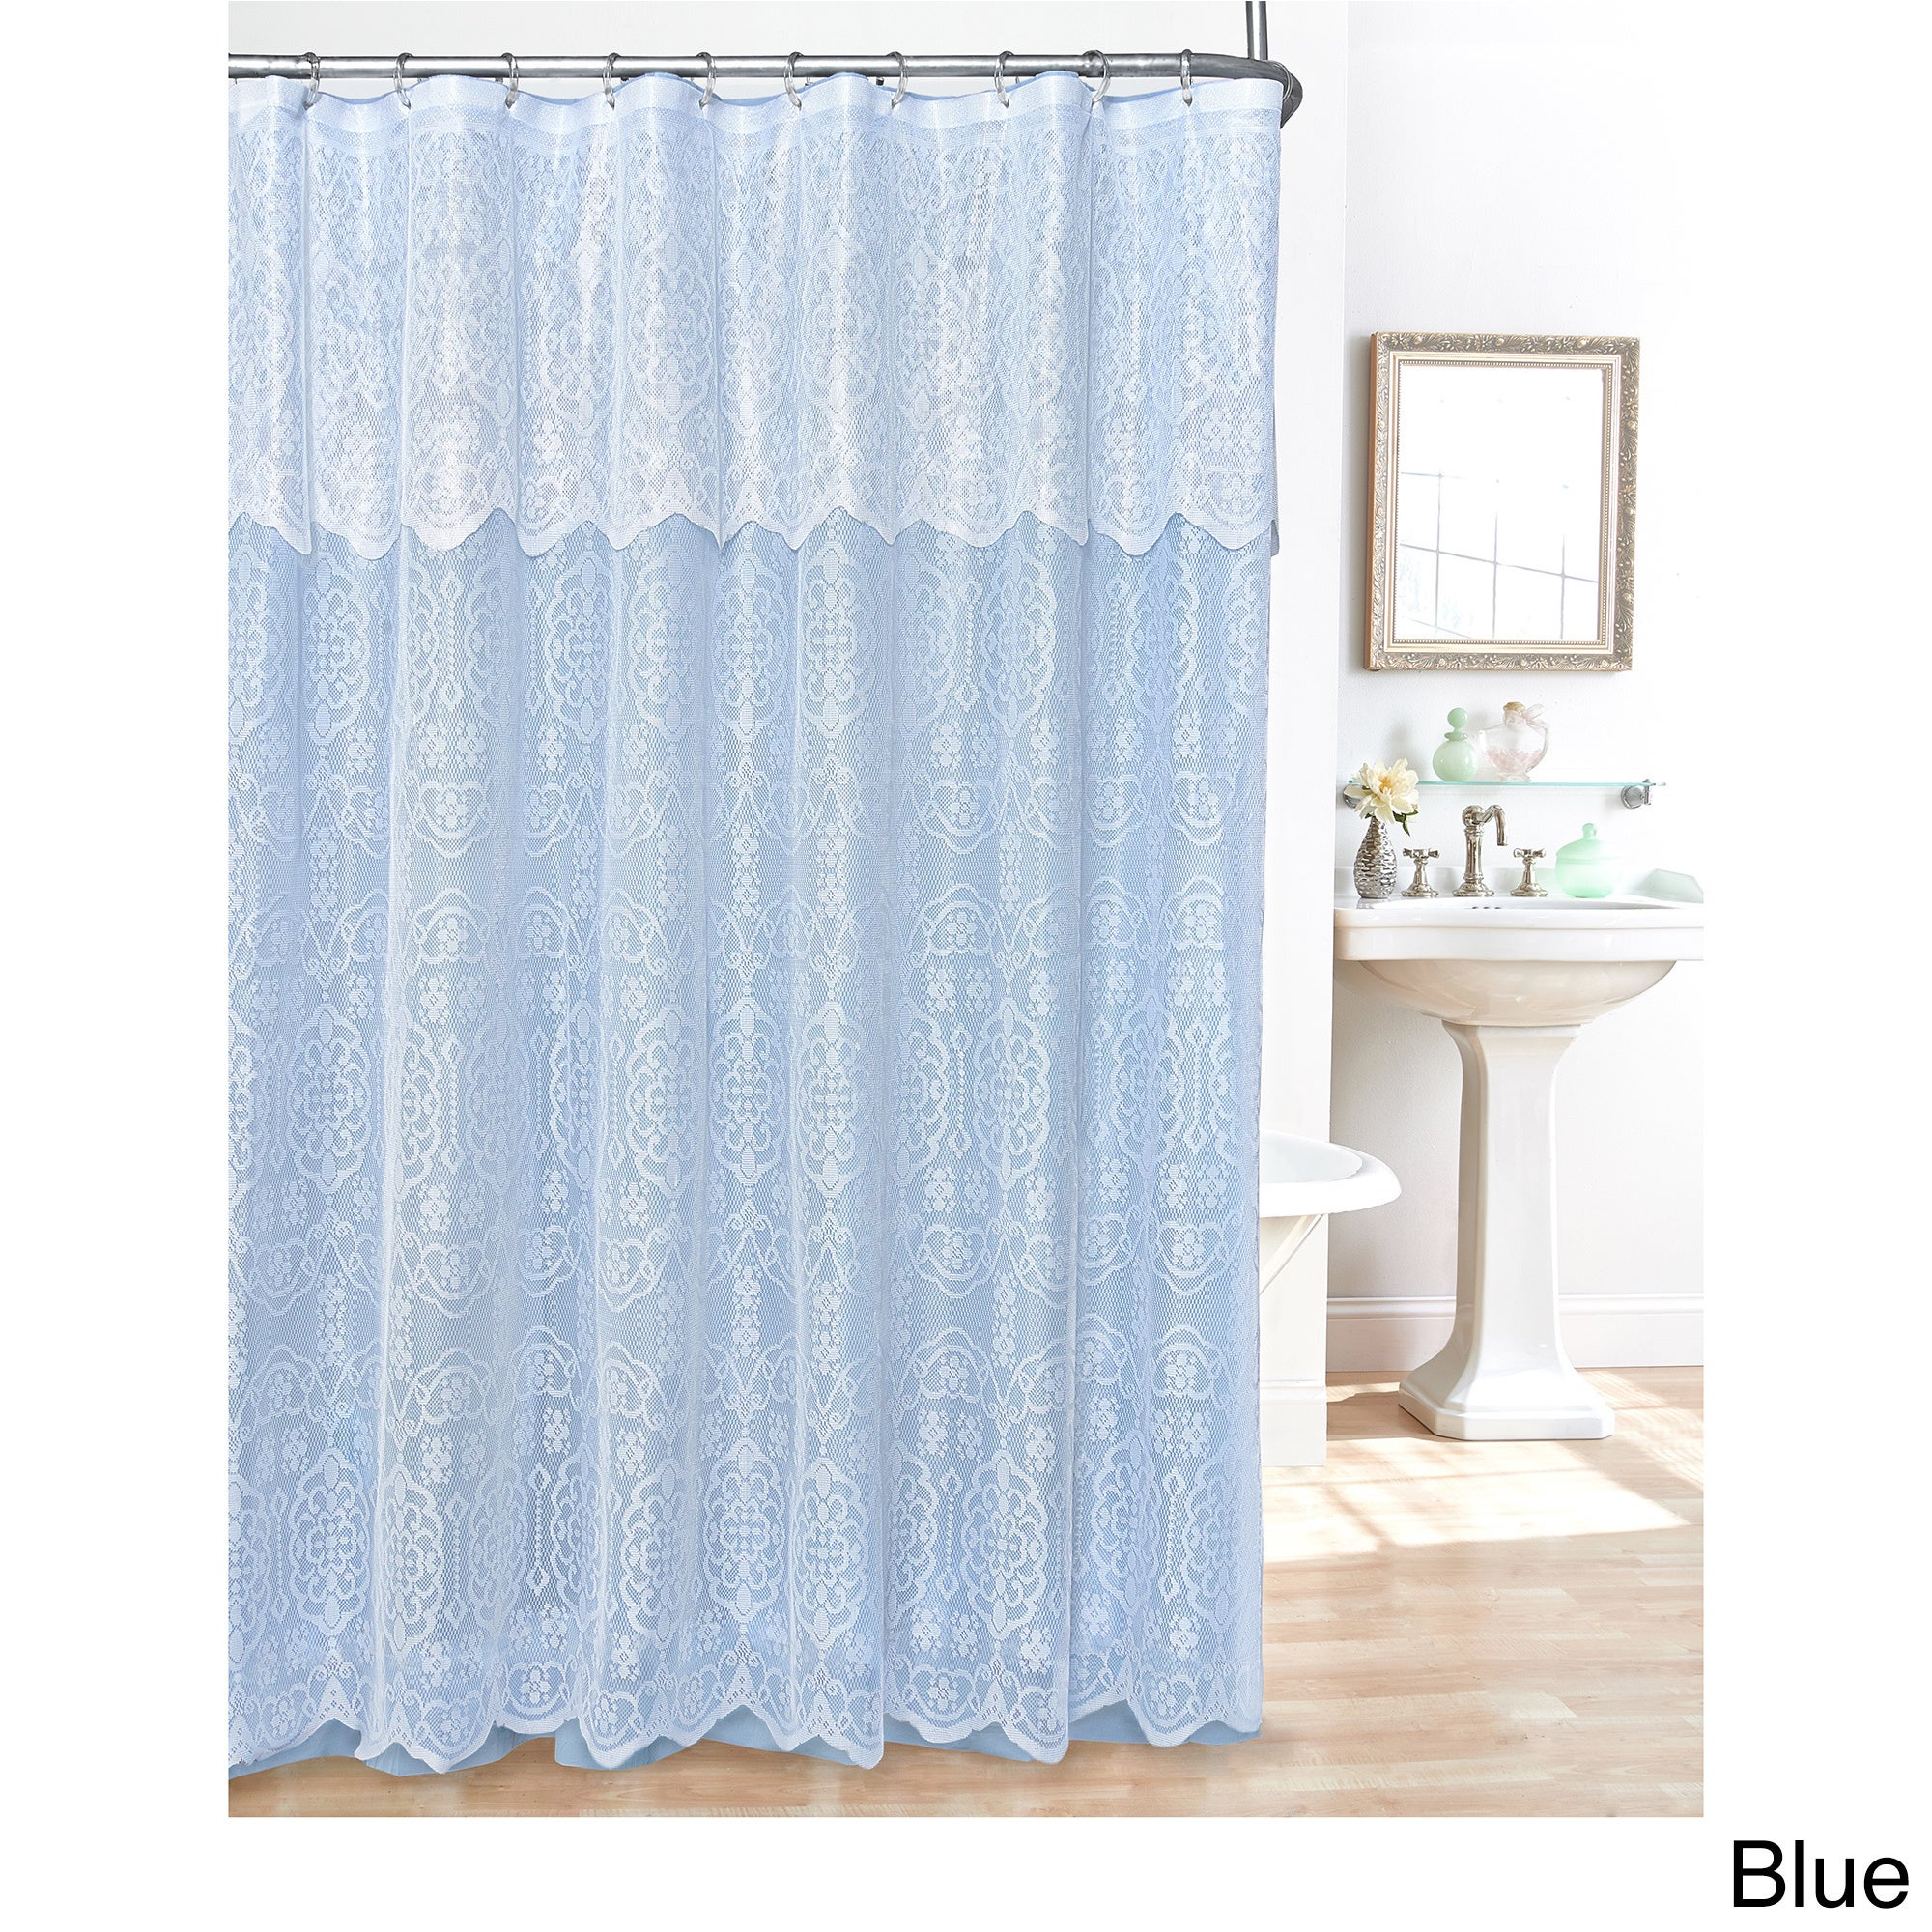 Maison Rouge Lewis Lace Shower Curtain - Free Shipping On Orders ...